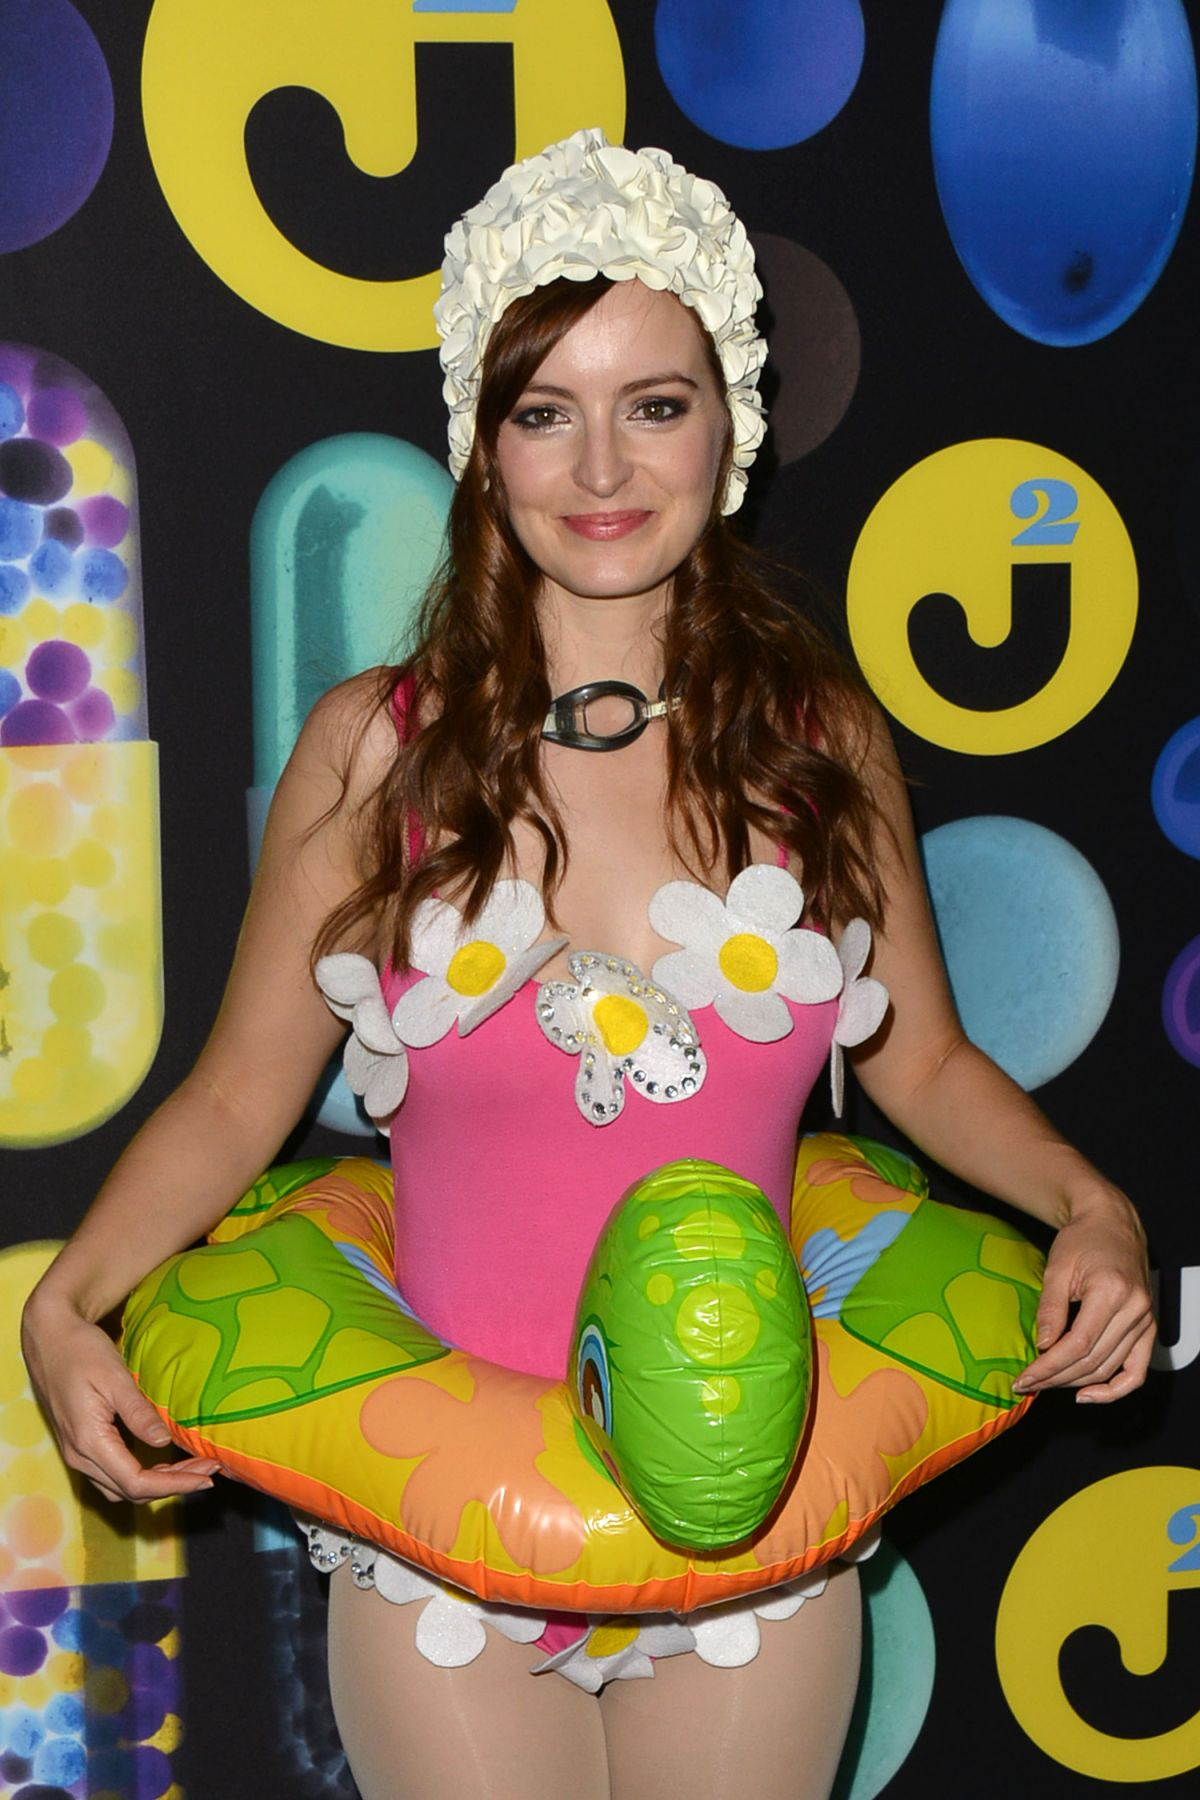 AHNA O'REILLY at Just Jared Halloween Party in Hollywood 10/31/2015